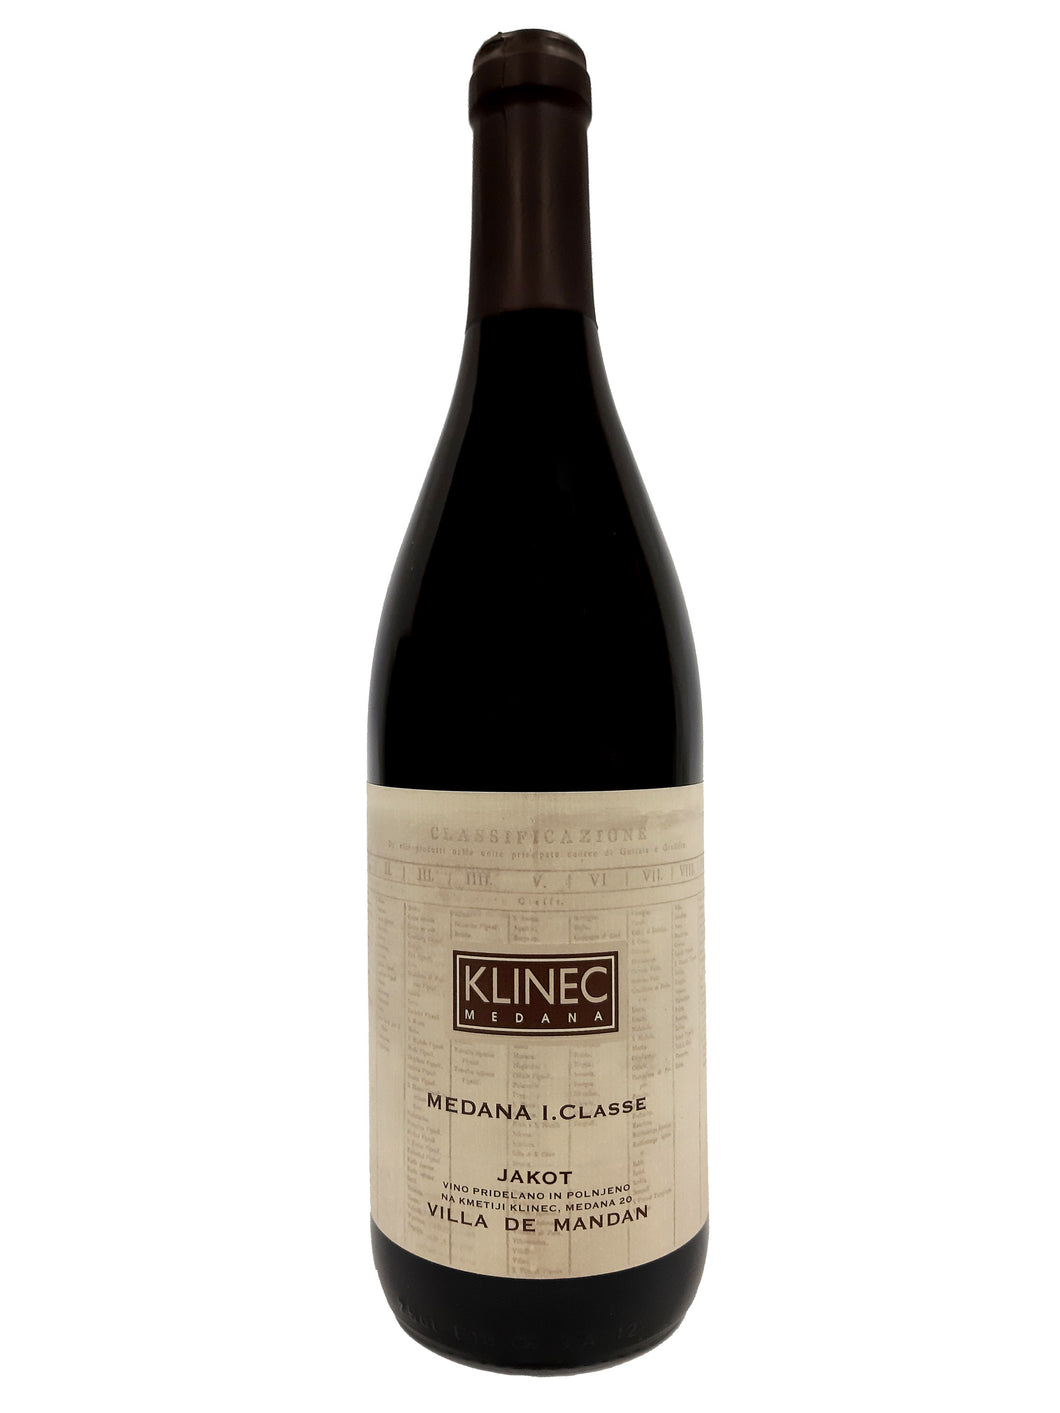 Klinec Medana - Jakot 2012 (Orange Wine)